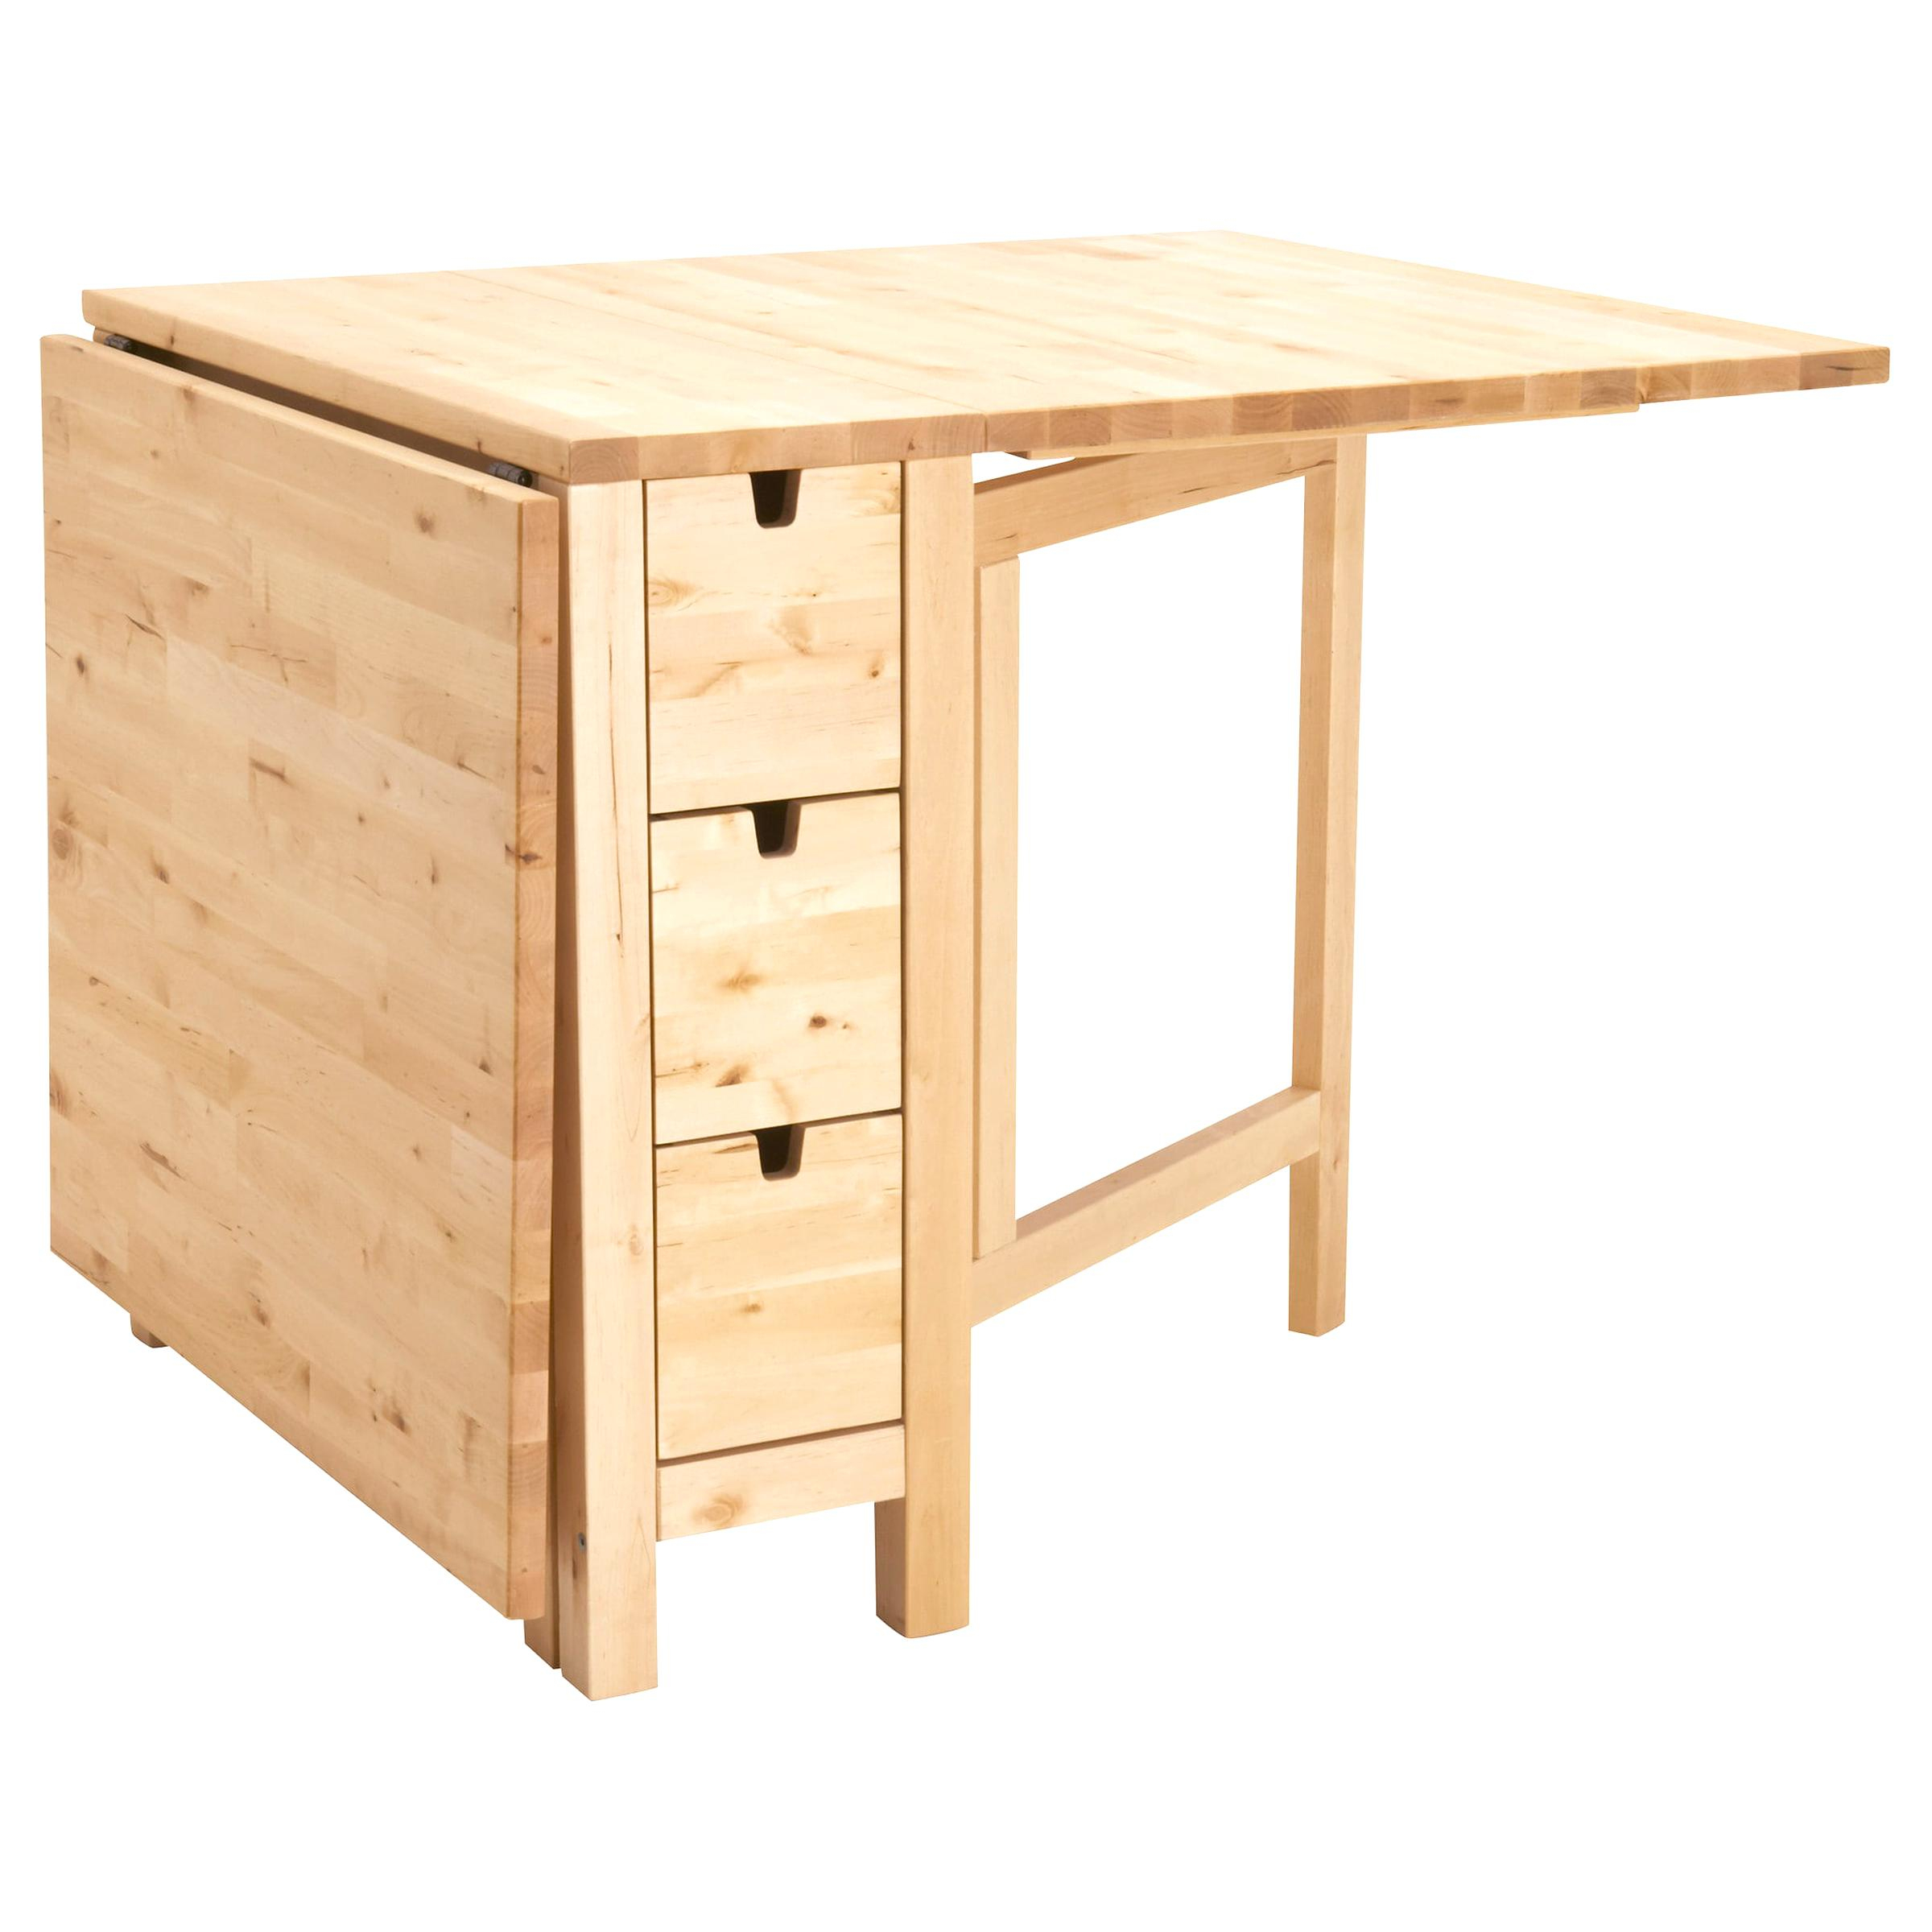 Table Ikea Norden D'occasion | Plus Que 4 À -65% à Table Pliante Ikea